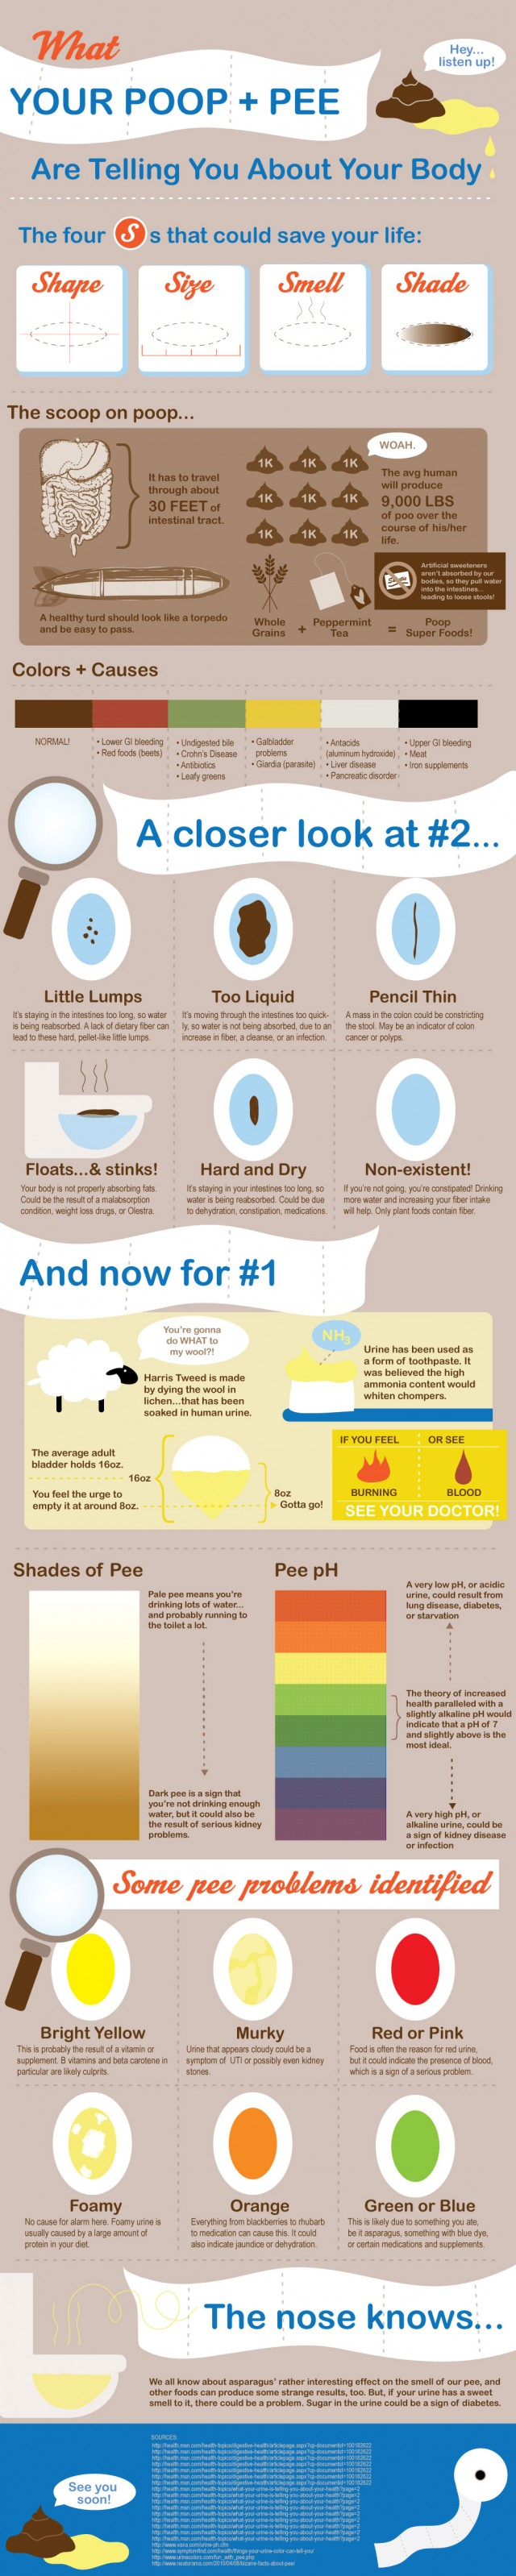 What your poop and pee is saying about your health